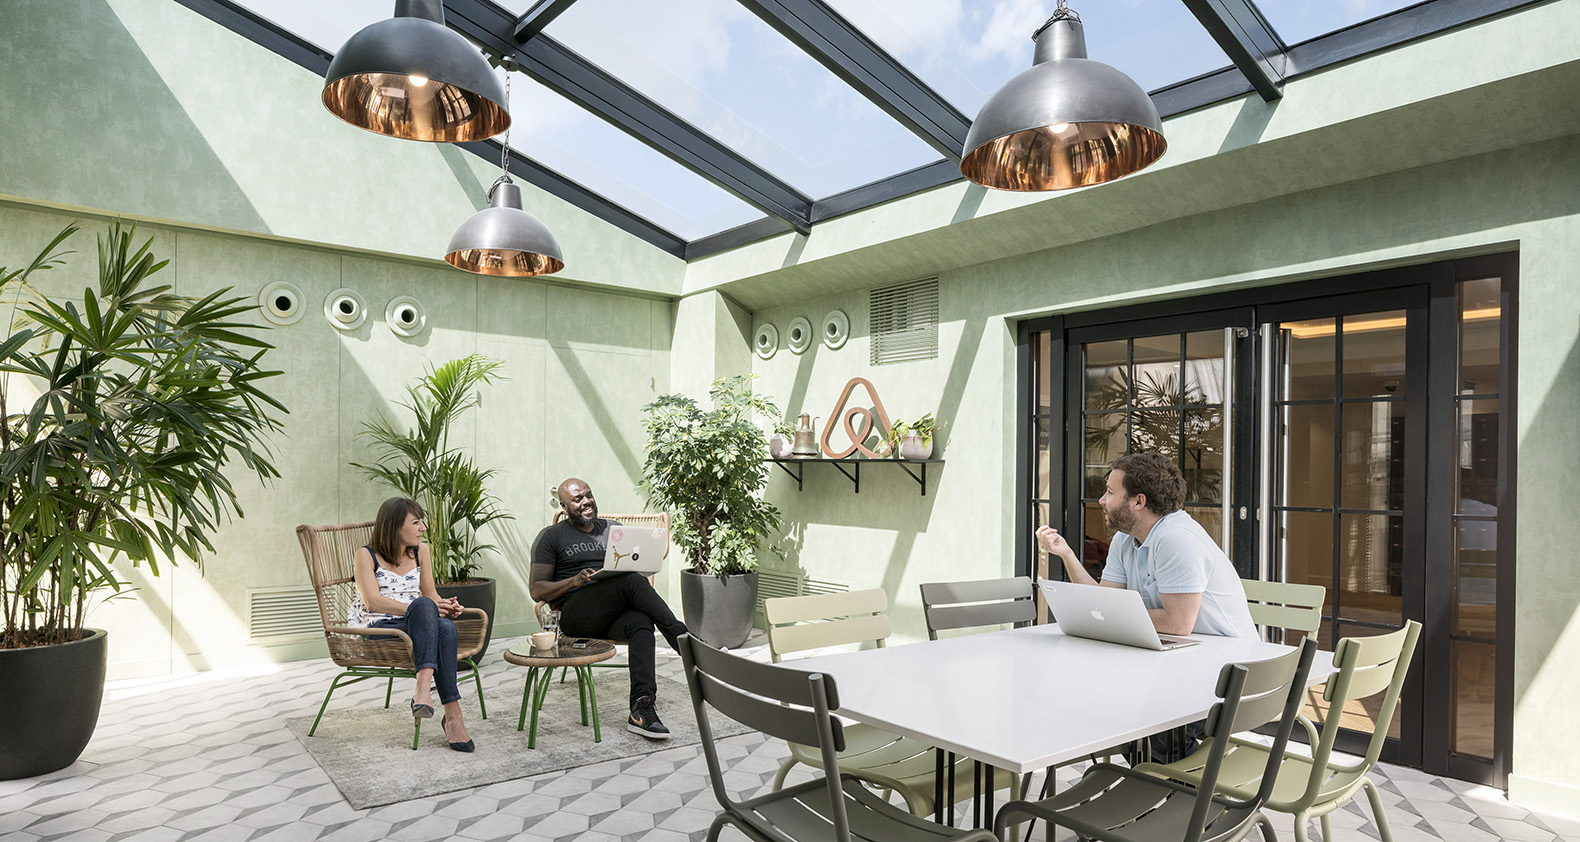 office space architecture. Airbnb\u0027s Brand New Paris Office Is A Loft-like Space That Feels Like Home Architecture P